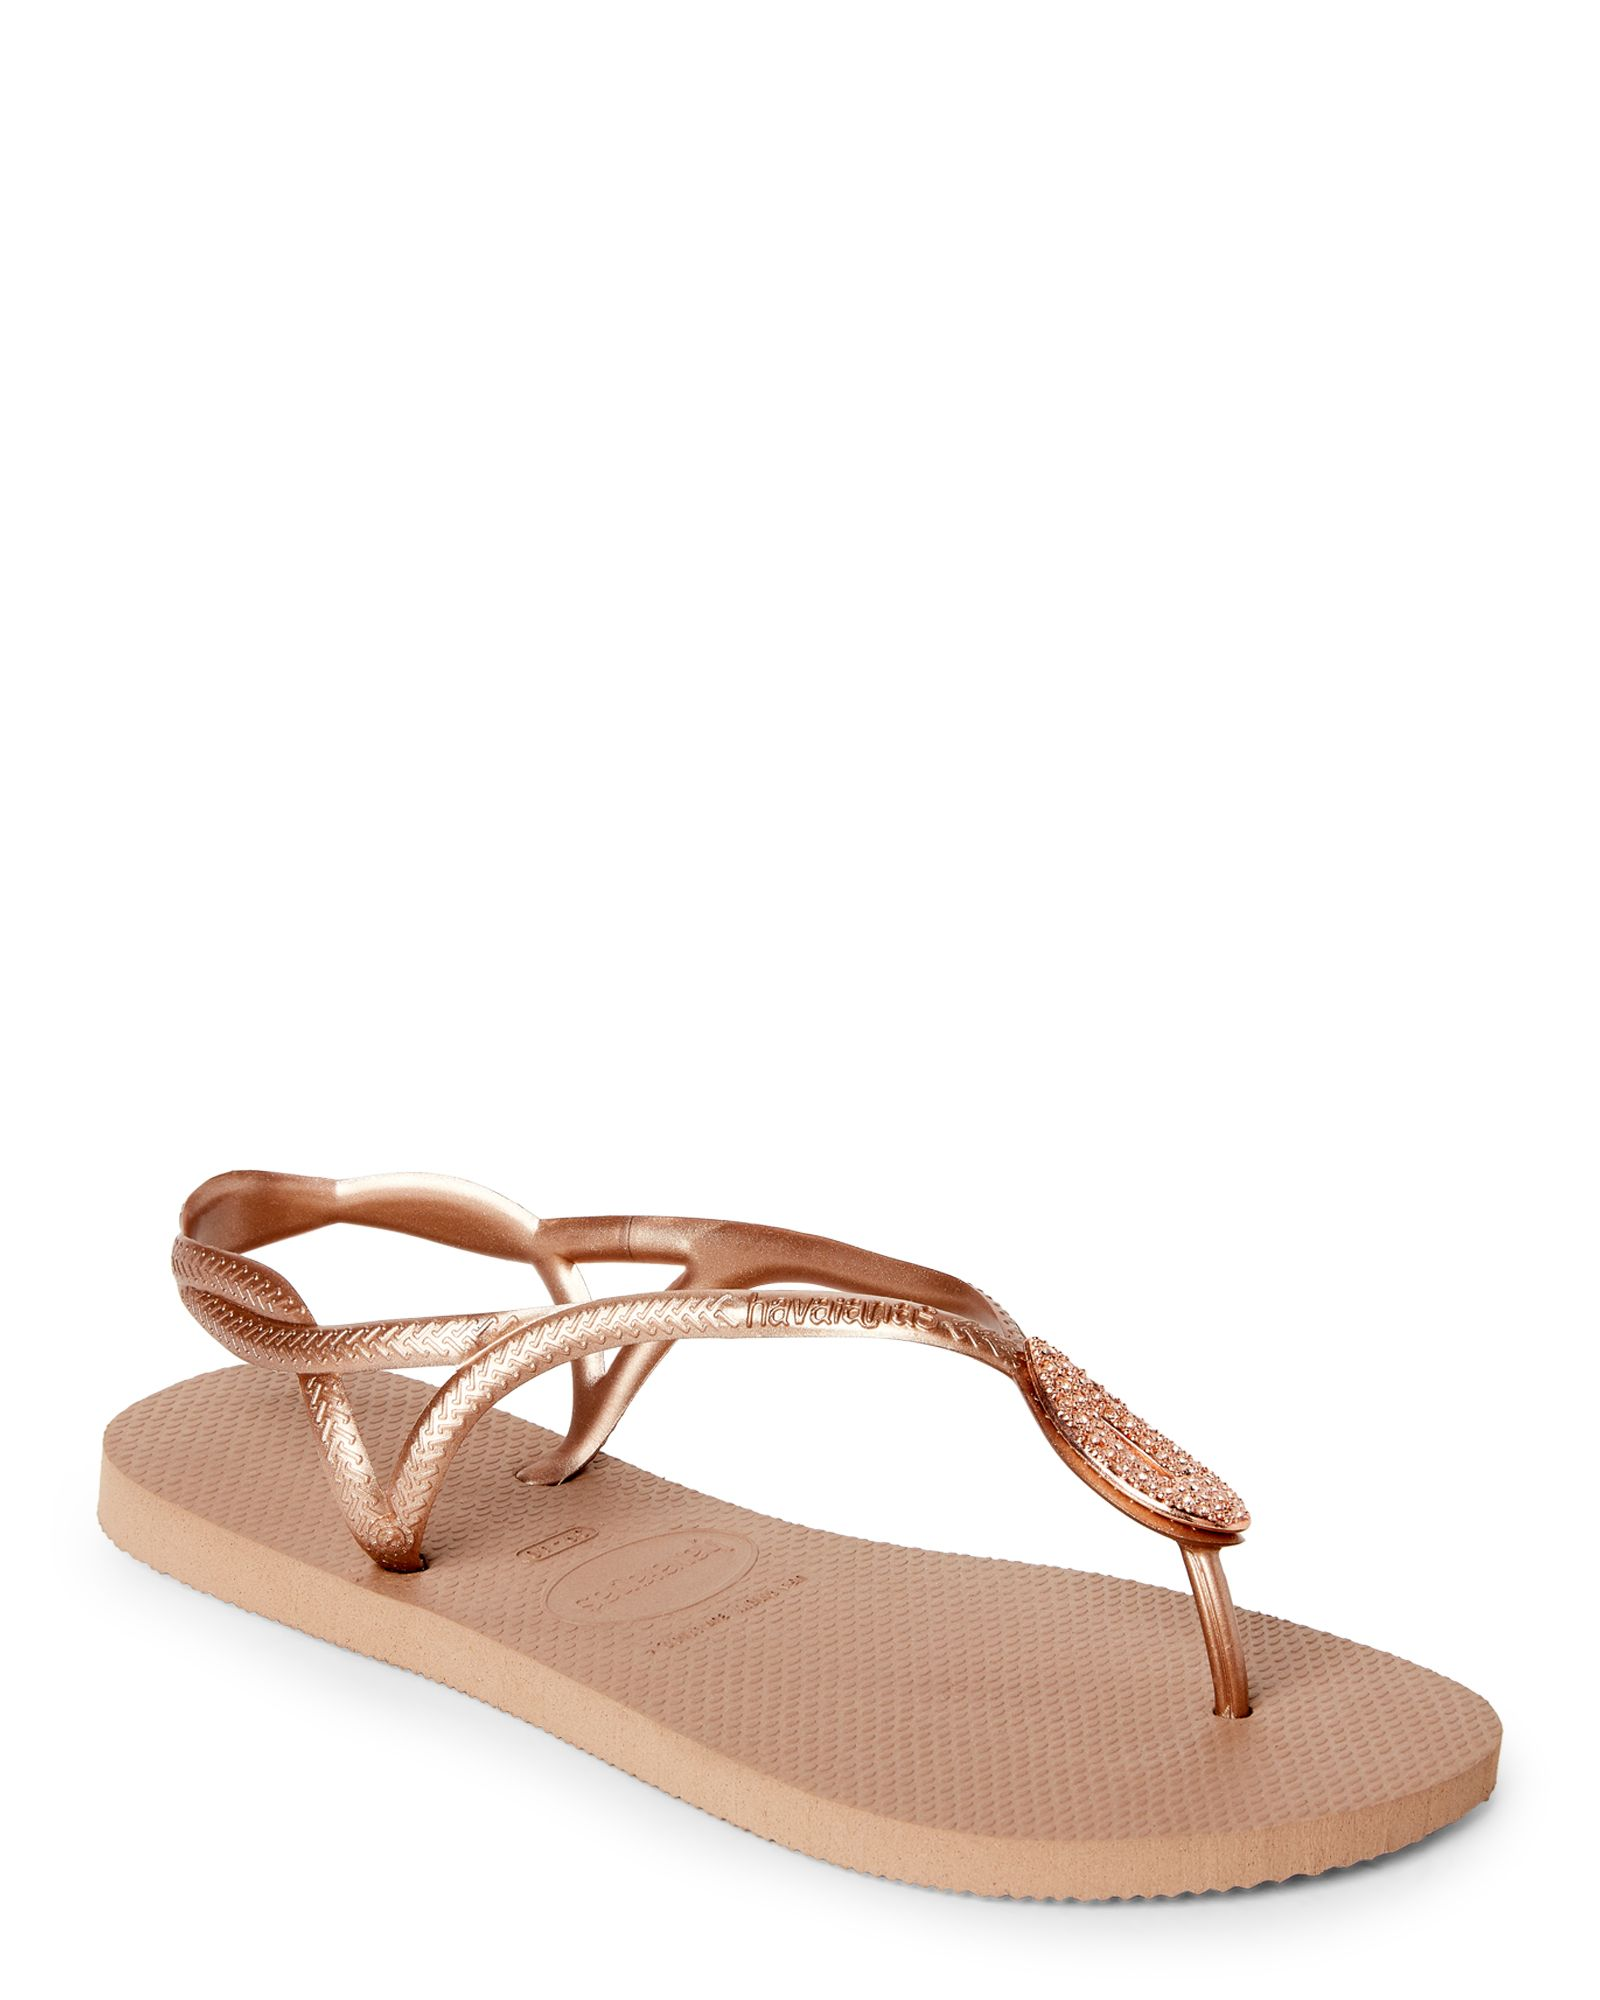 5d031ff96c6f53 Havaianas Rose Gold Luna Special Thong Sandals Rose Gold